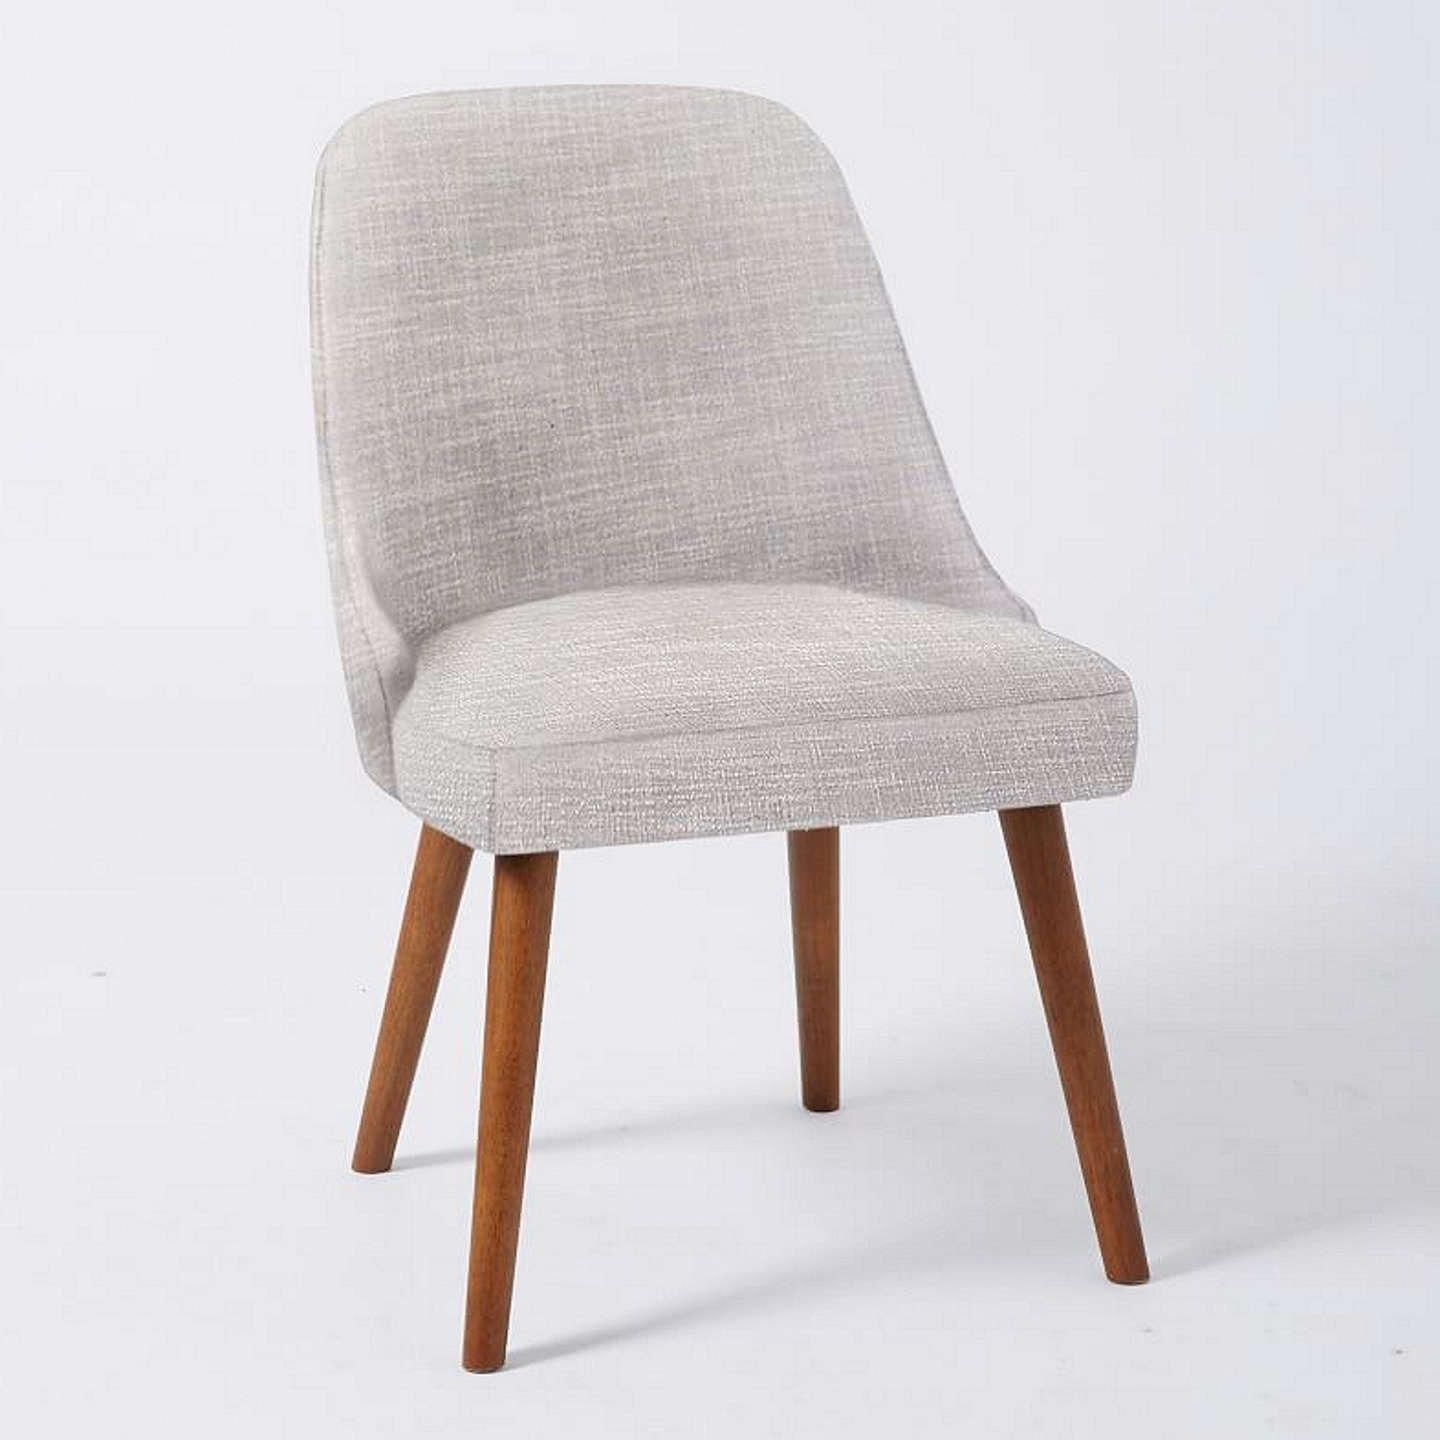 Saddle Office Chair Buywest Elm Saddle Office Chair Online At Johnlewis